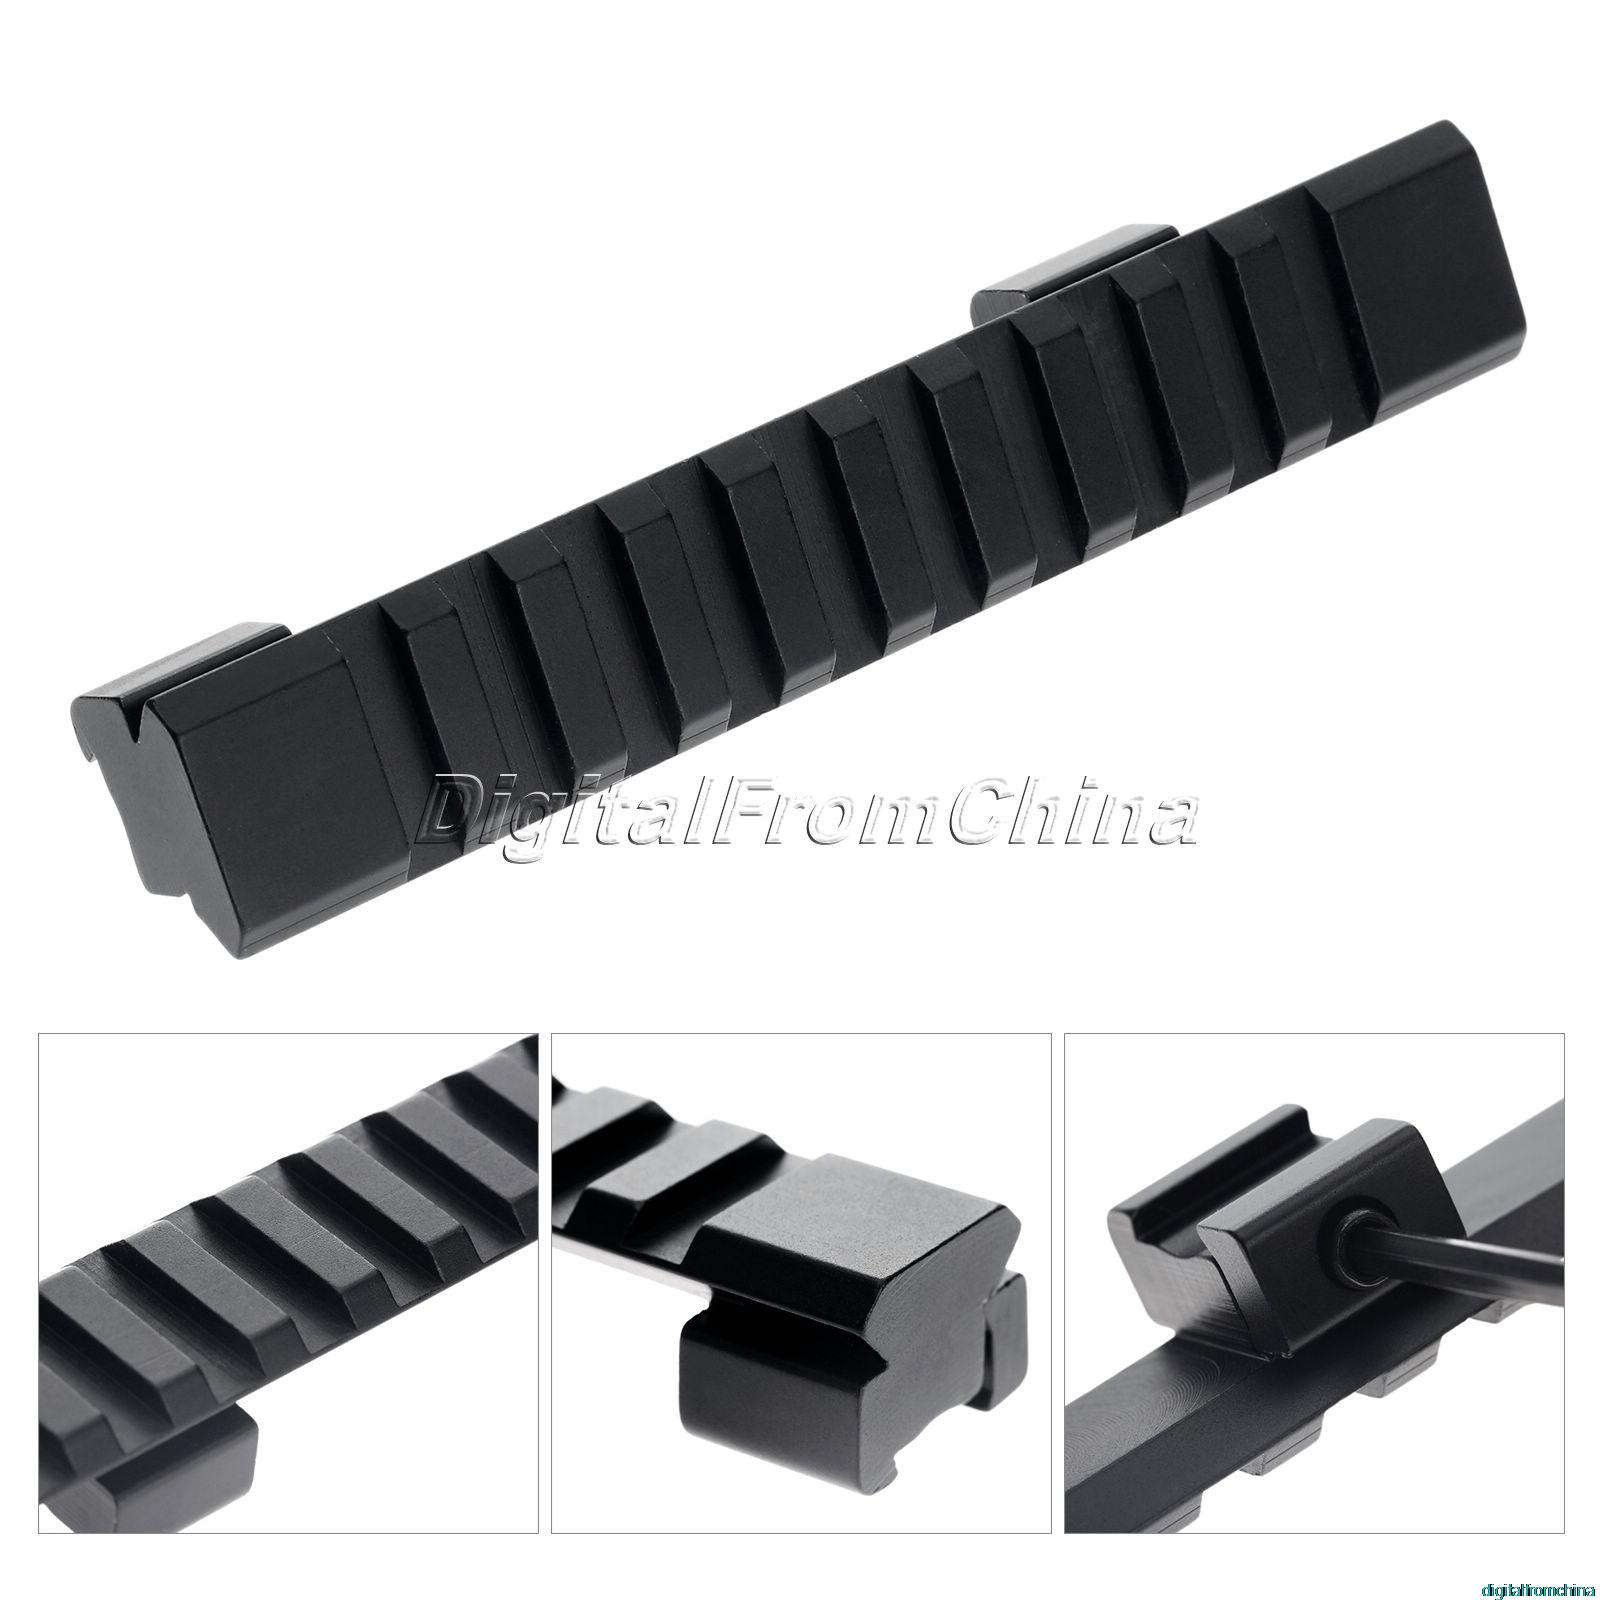 """D0023 11mm Rail Mount Aluminum Alloy Picatinny Weaver Rail with 10 Slots"""" 124mm Length for Hunting Rifle / Air Gun Scope Mount(China (Mainland))"""